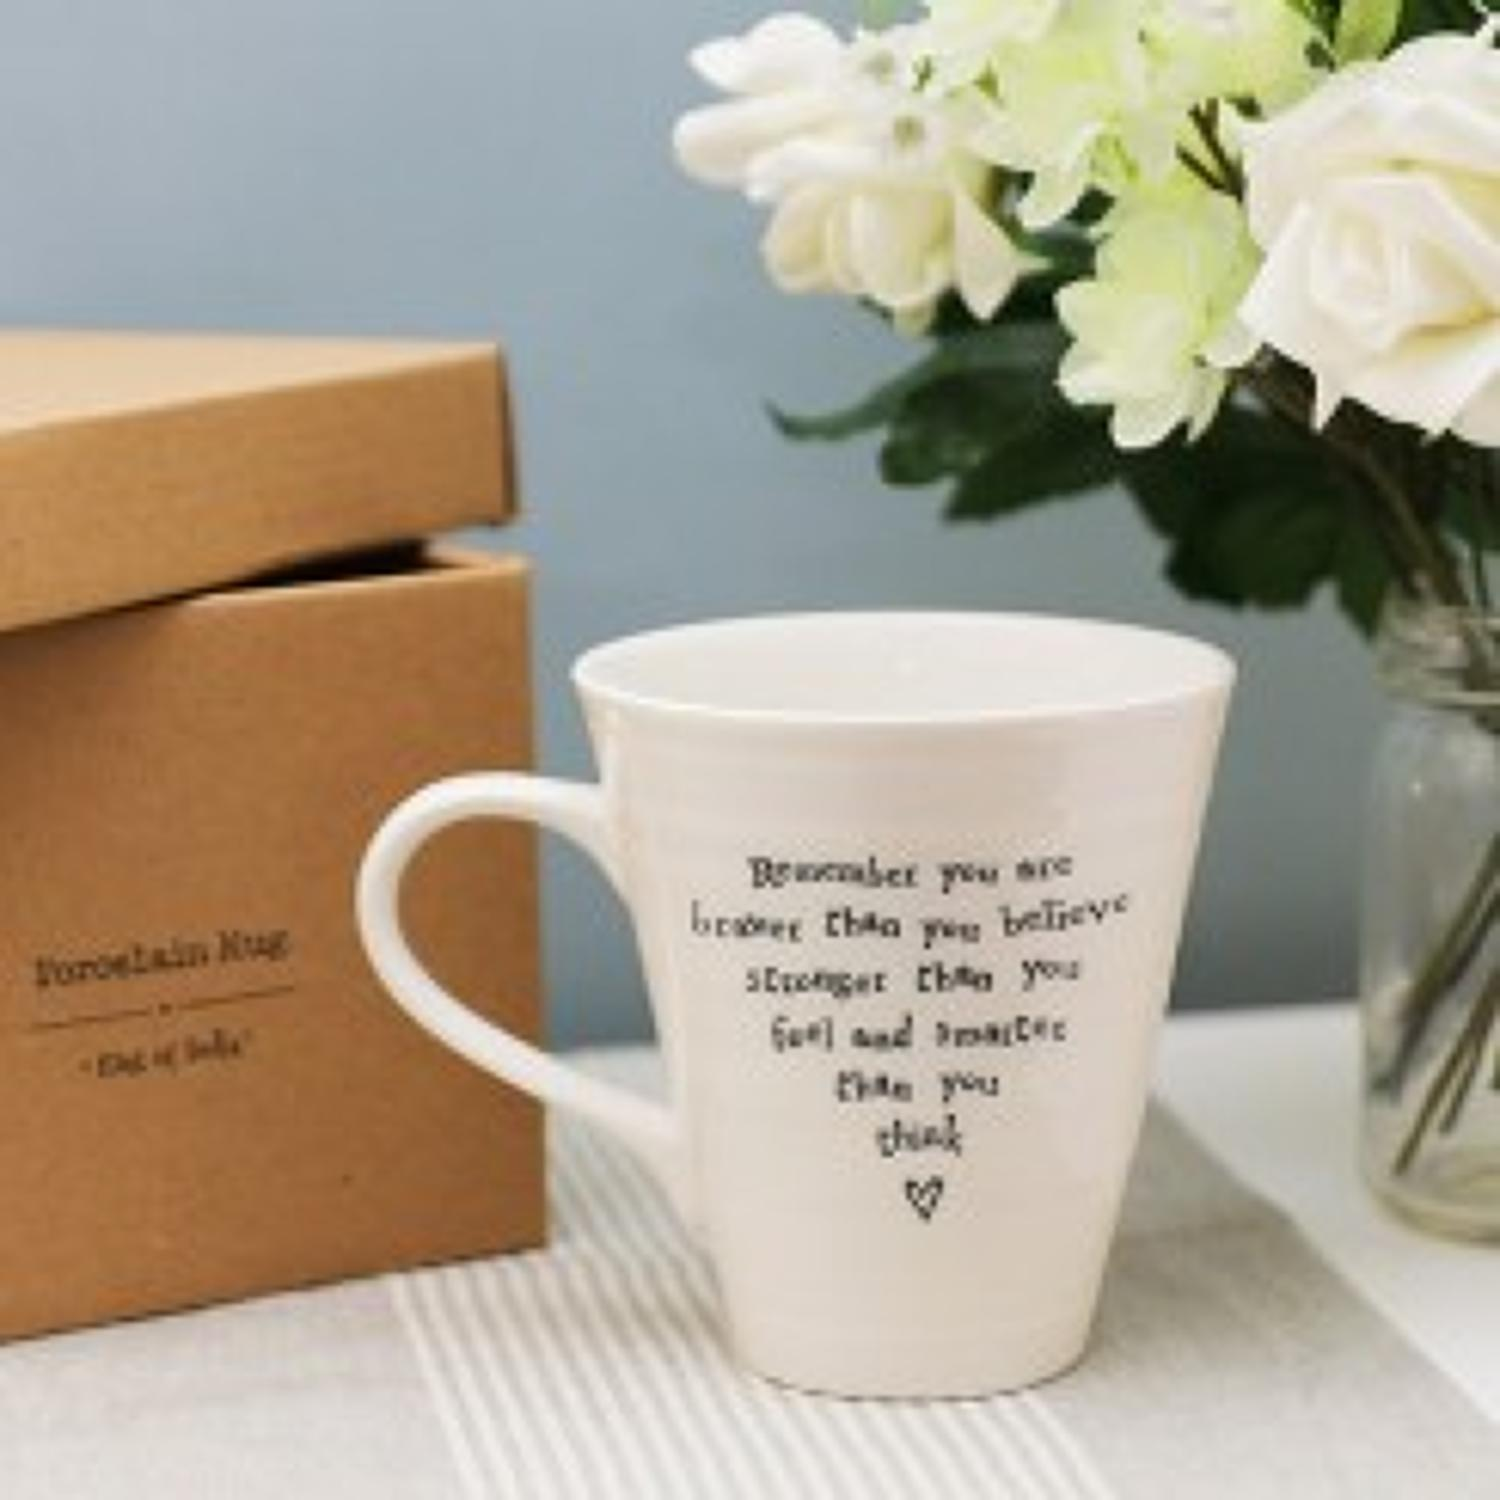 East of India - Boxed porcelain mug - Remember you are braver than you